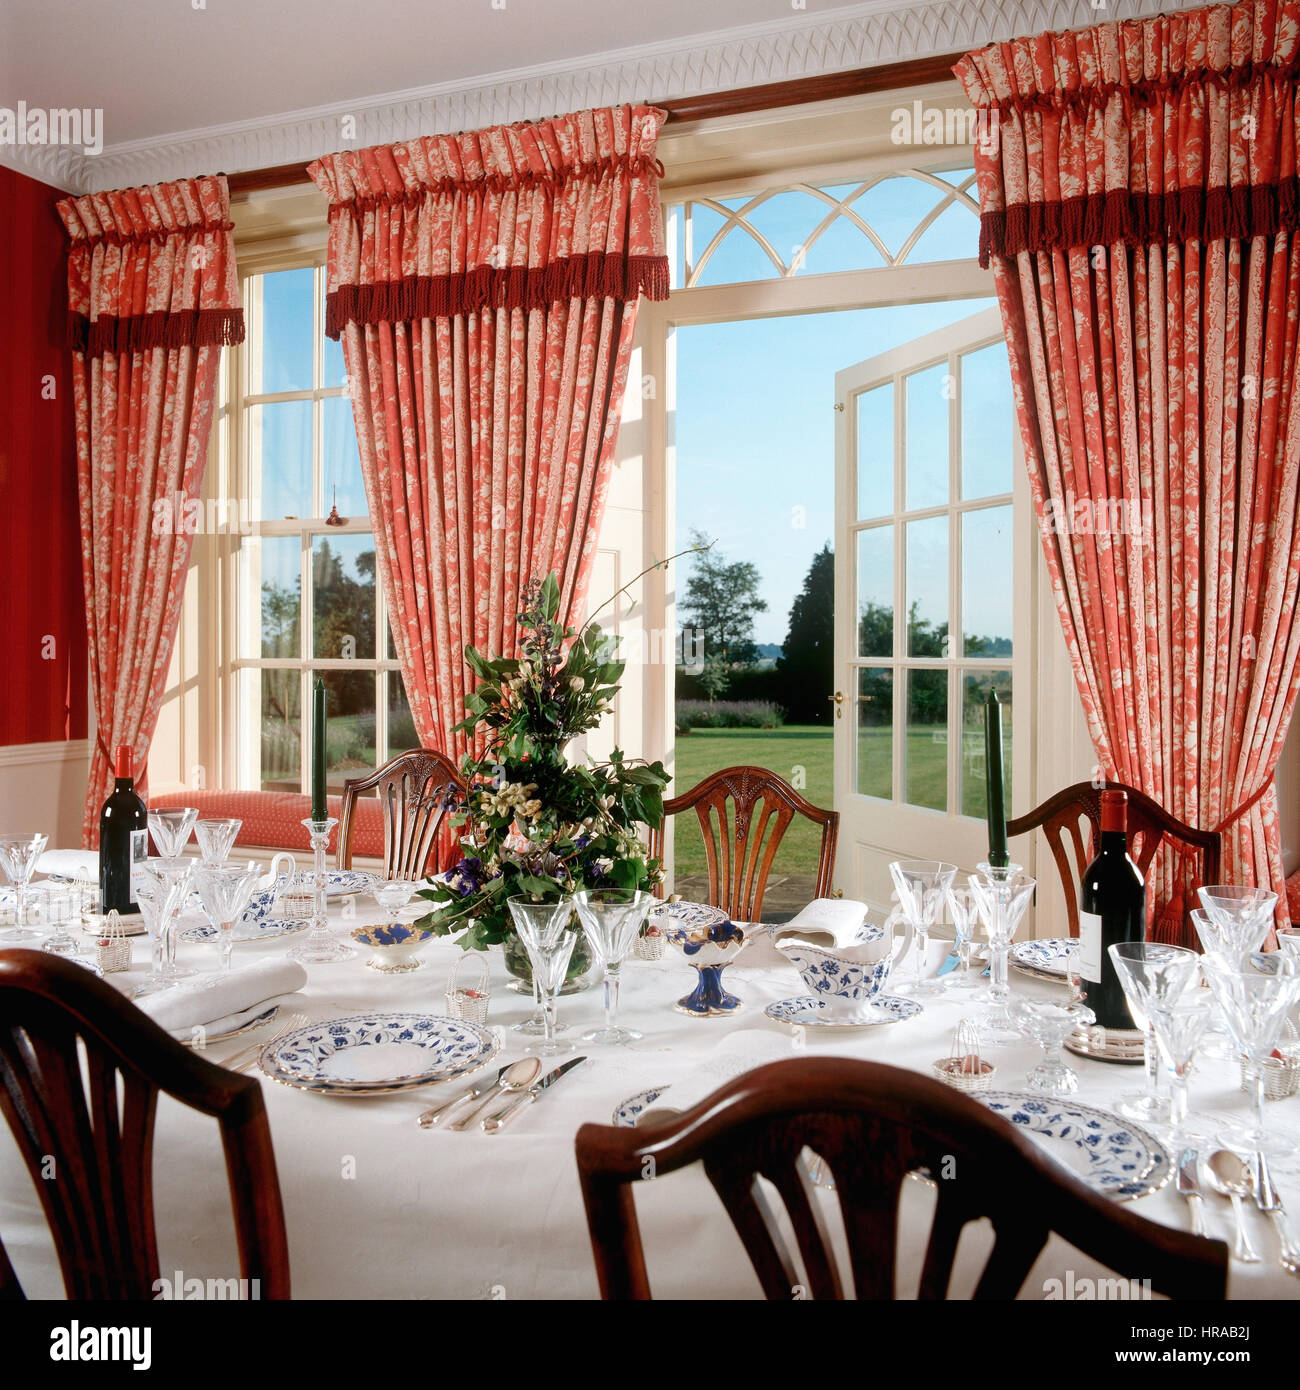 Red patterned curtains - China And Glassware In Dining Room With Red Patterned Curtains Framing Spectacular Views To Garden